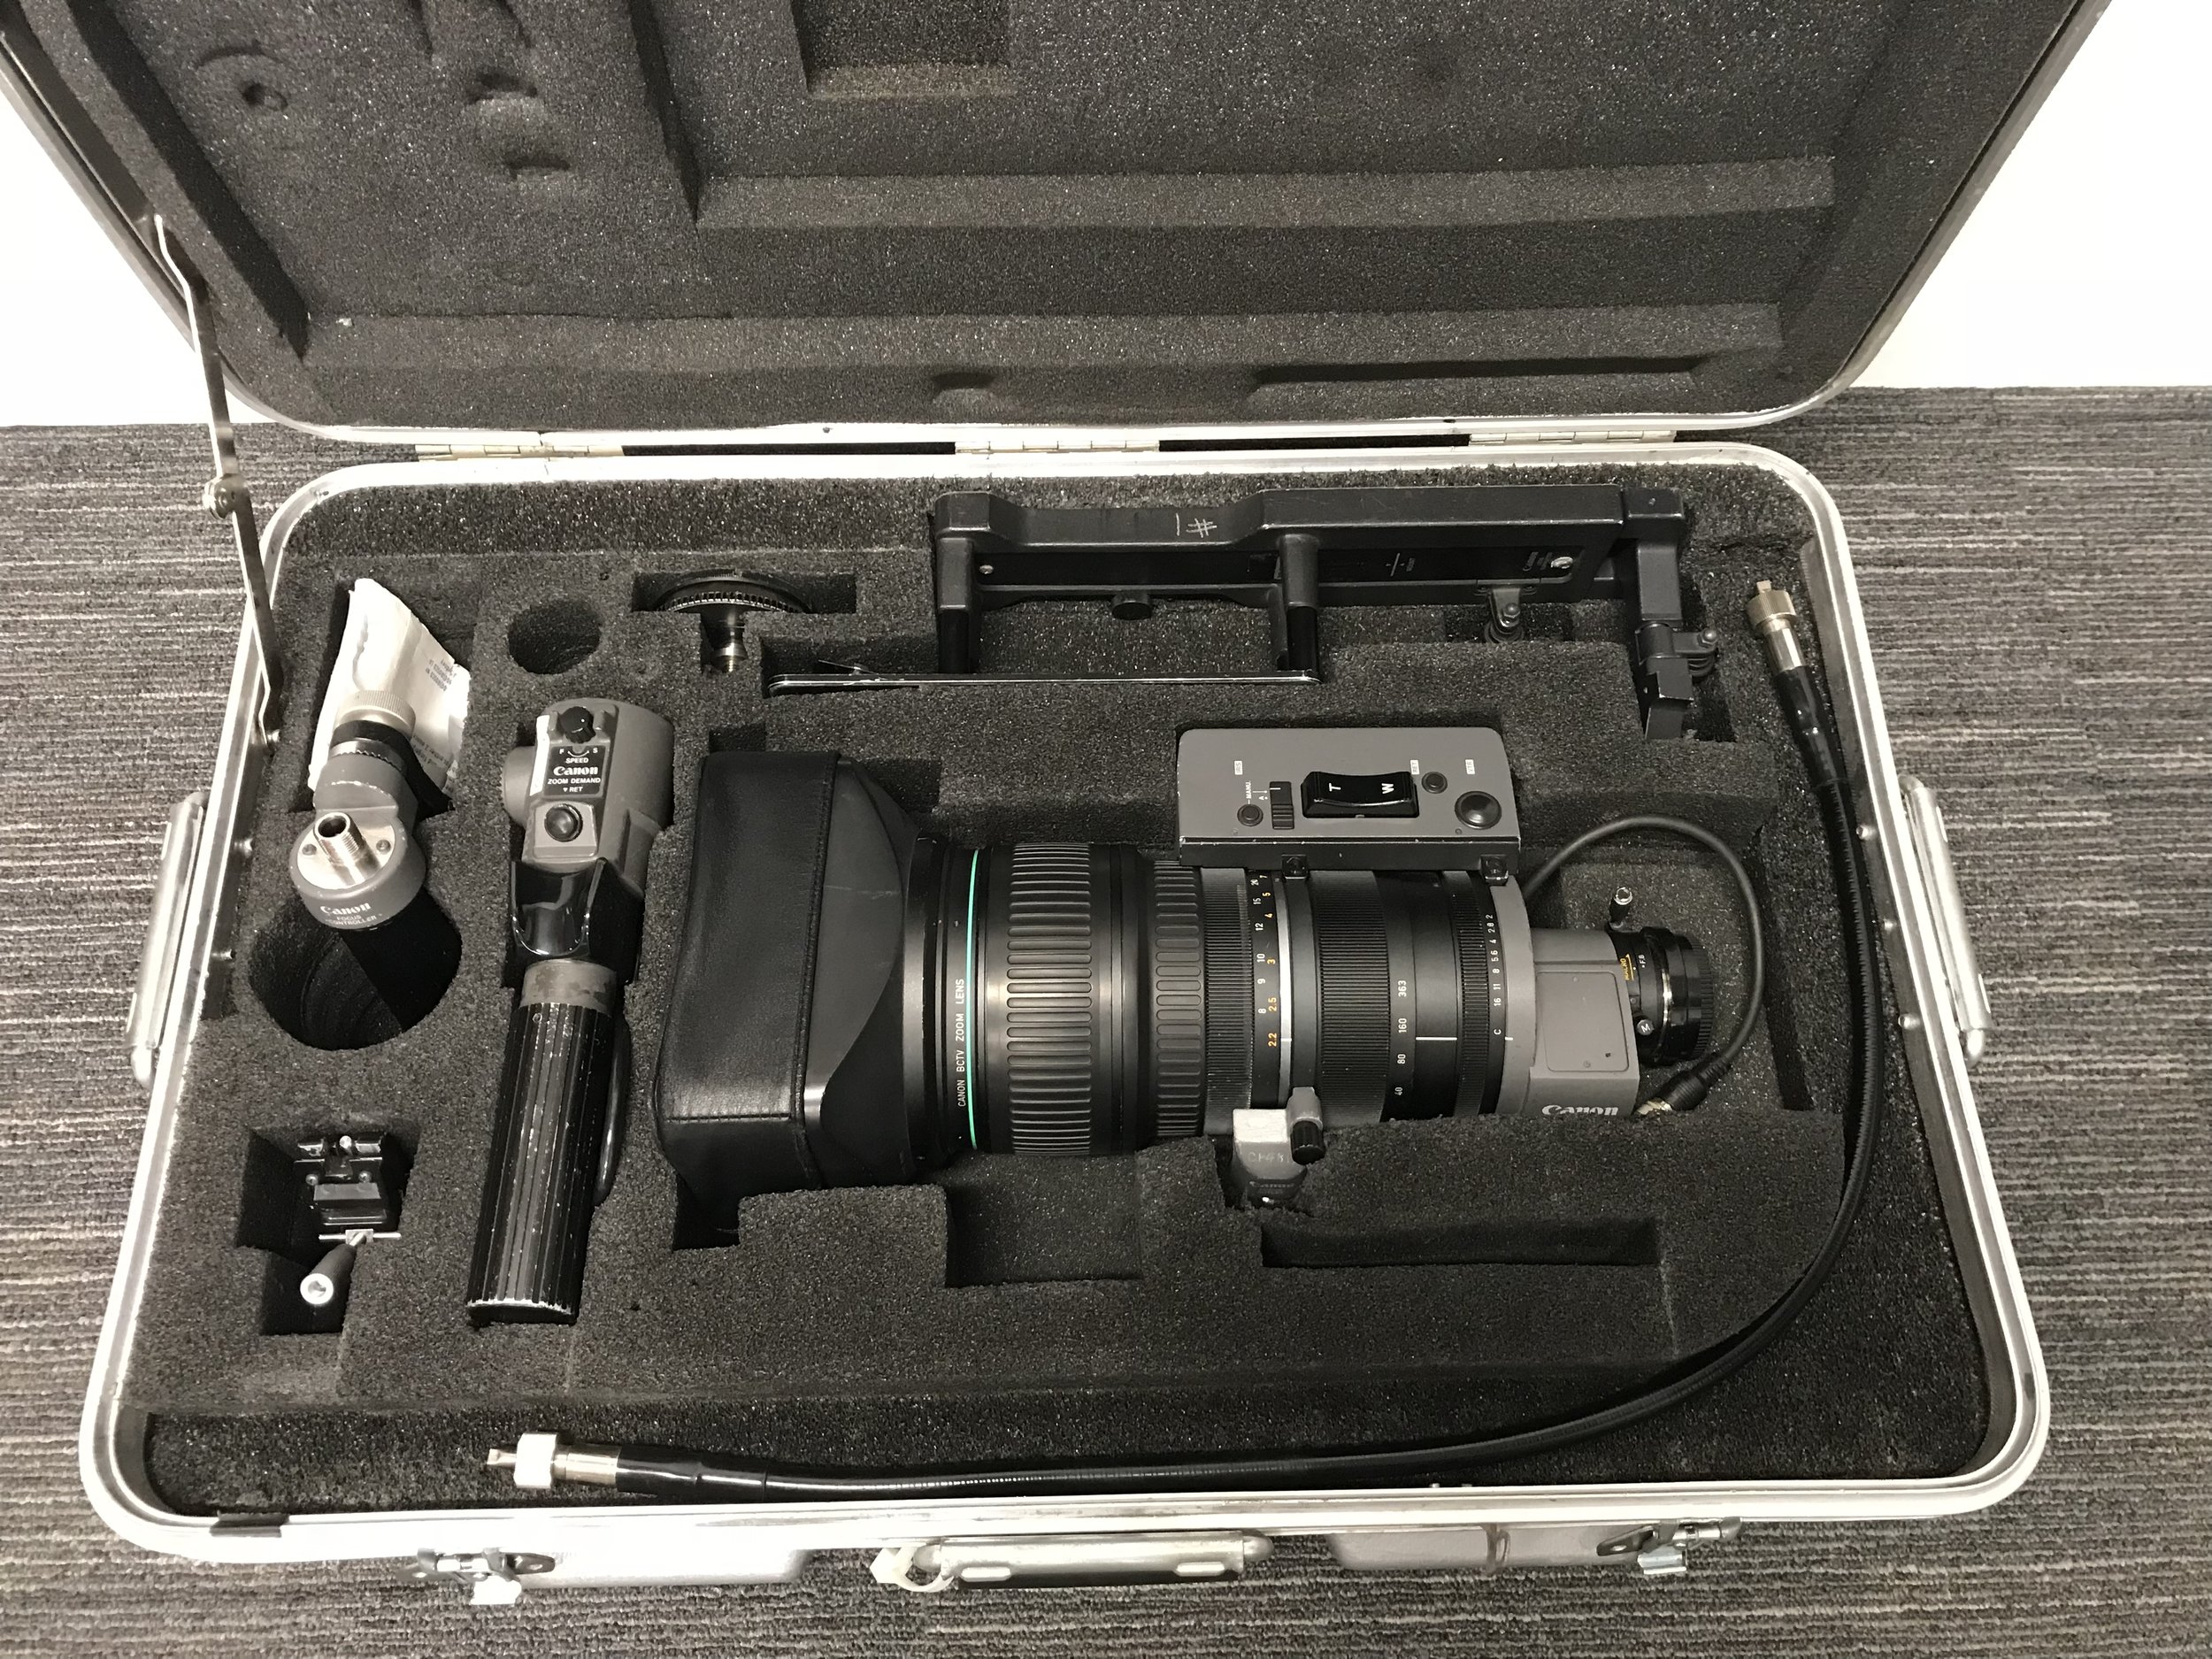 Picture of AV for You Canon J33 Lens available to rent